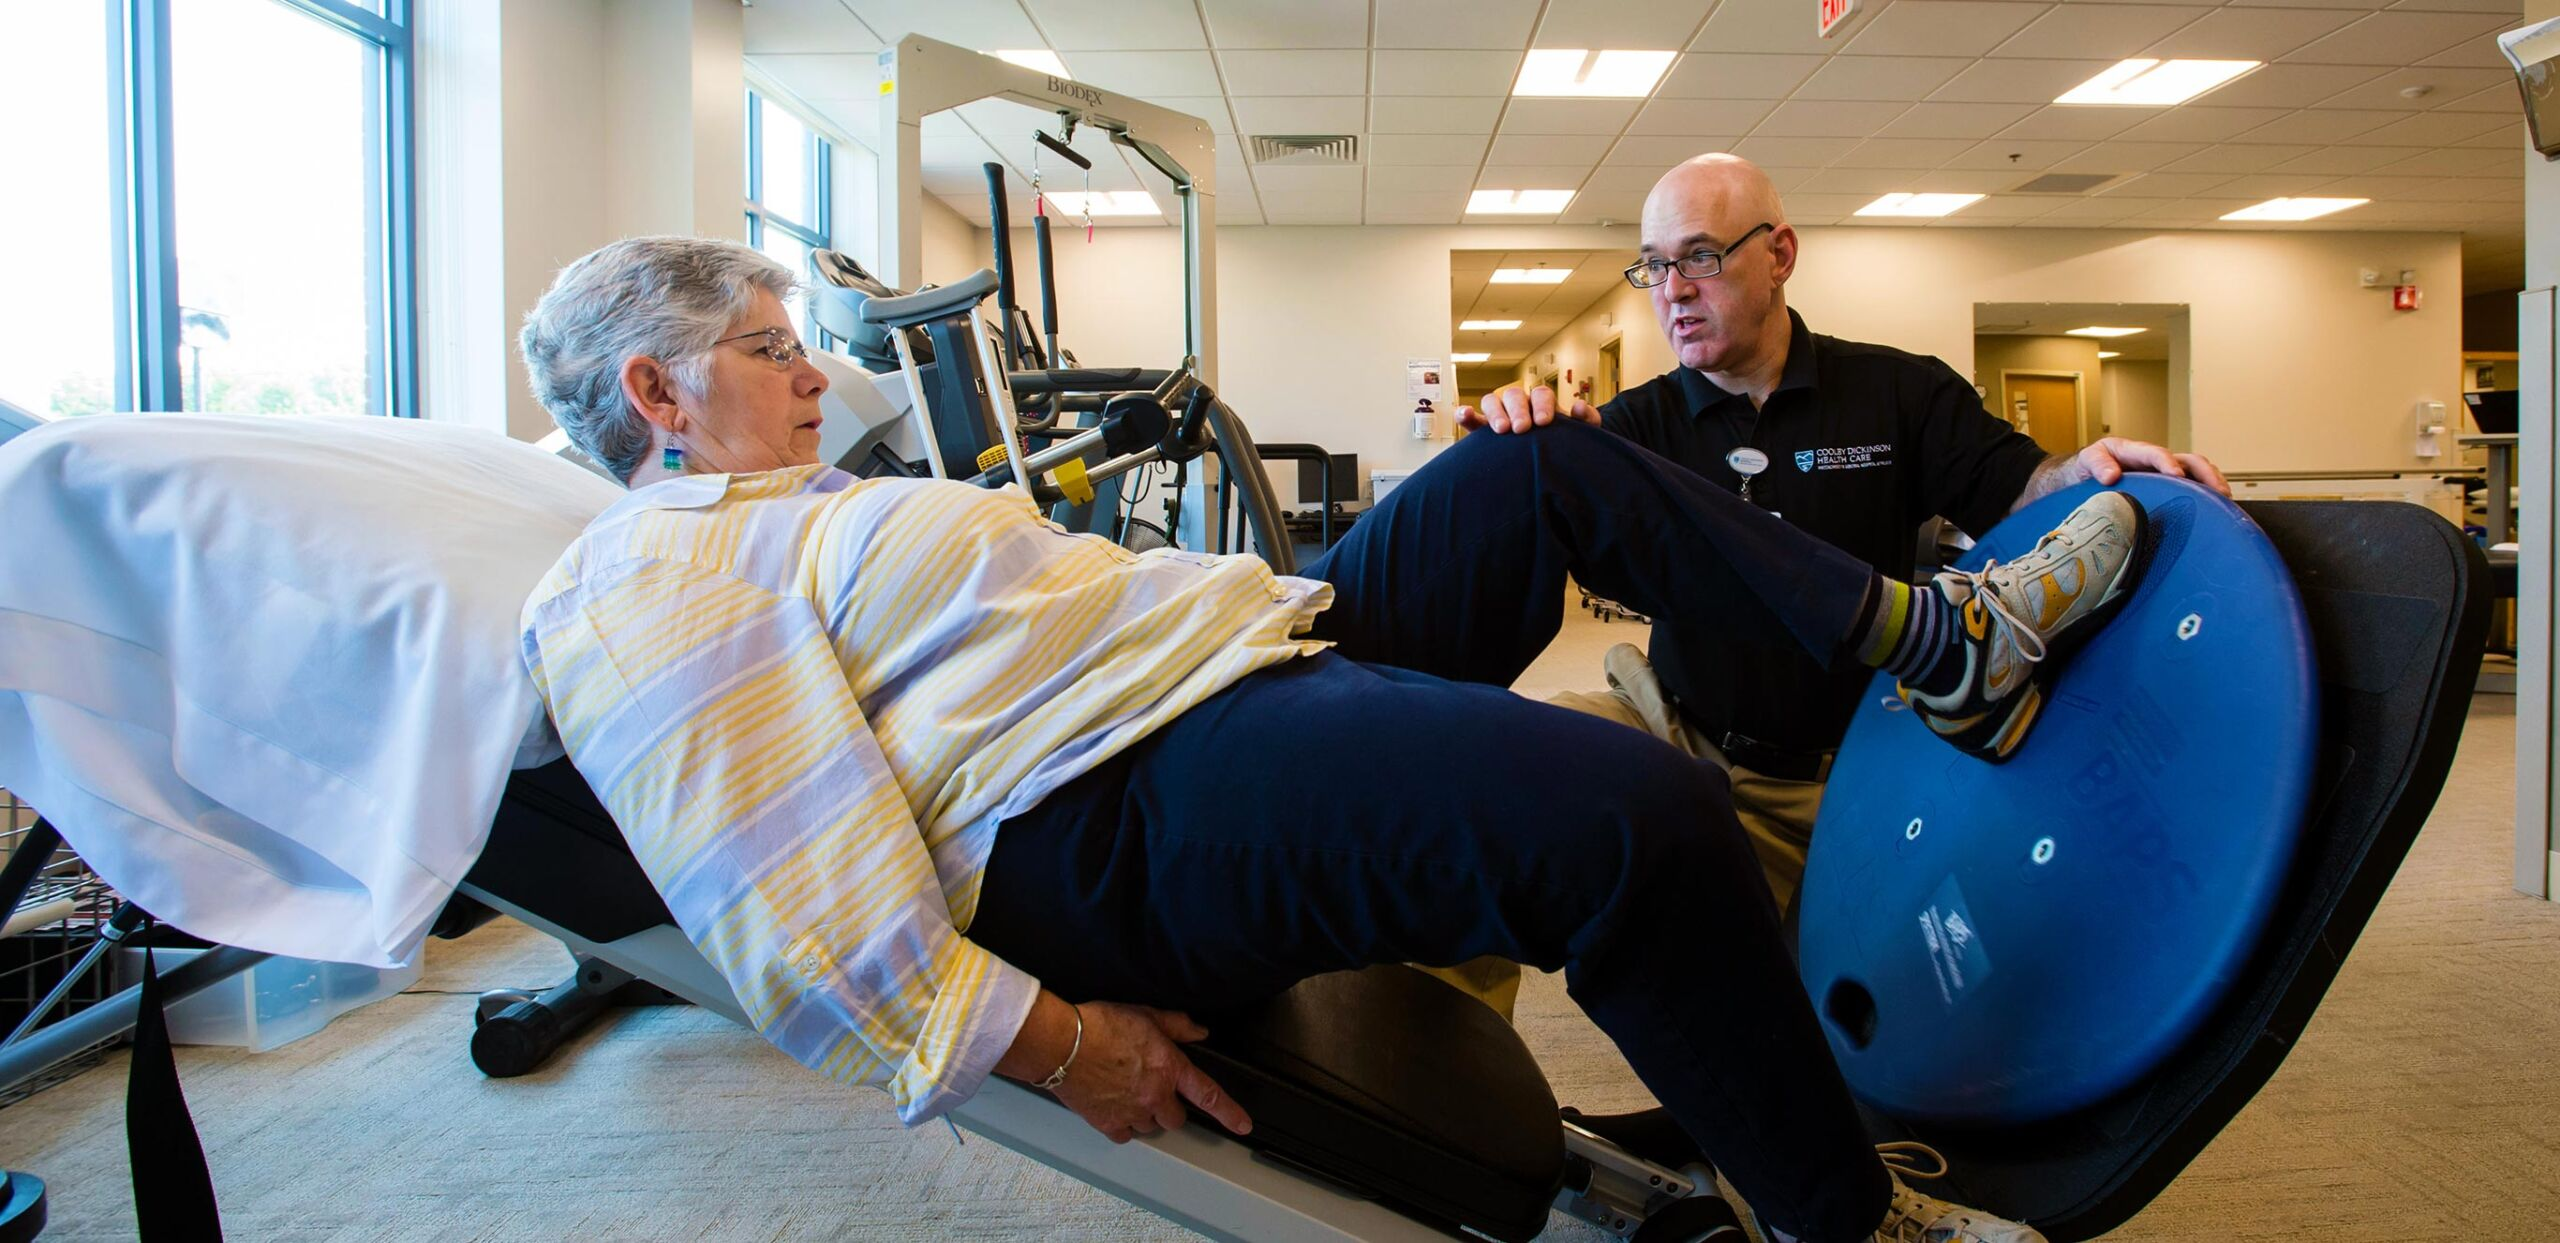 Physical Therapy at Cooley Dickinson Rehabilitation Services in Northampton, MA